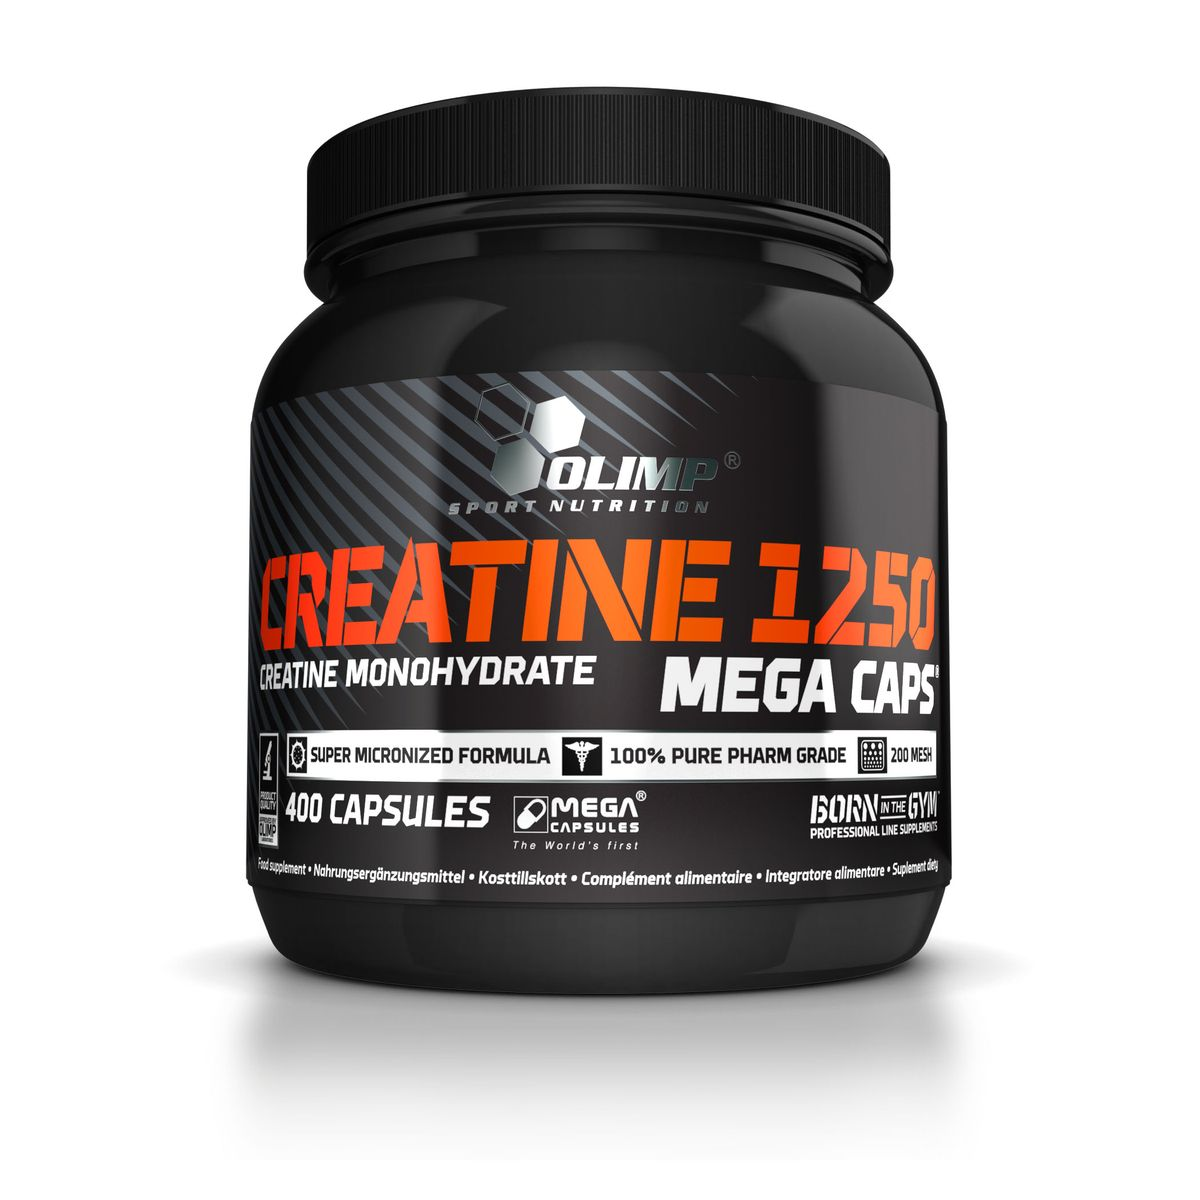 Креатин Olimp Sport Nutrition Mega Caps, 400 капсул креатин olimp sport nutrition mega caps 120 капсул